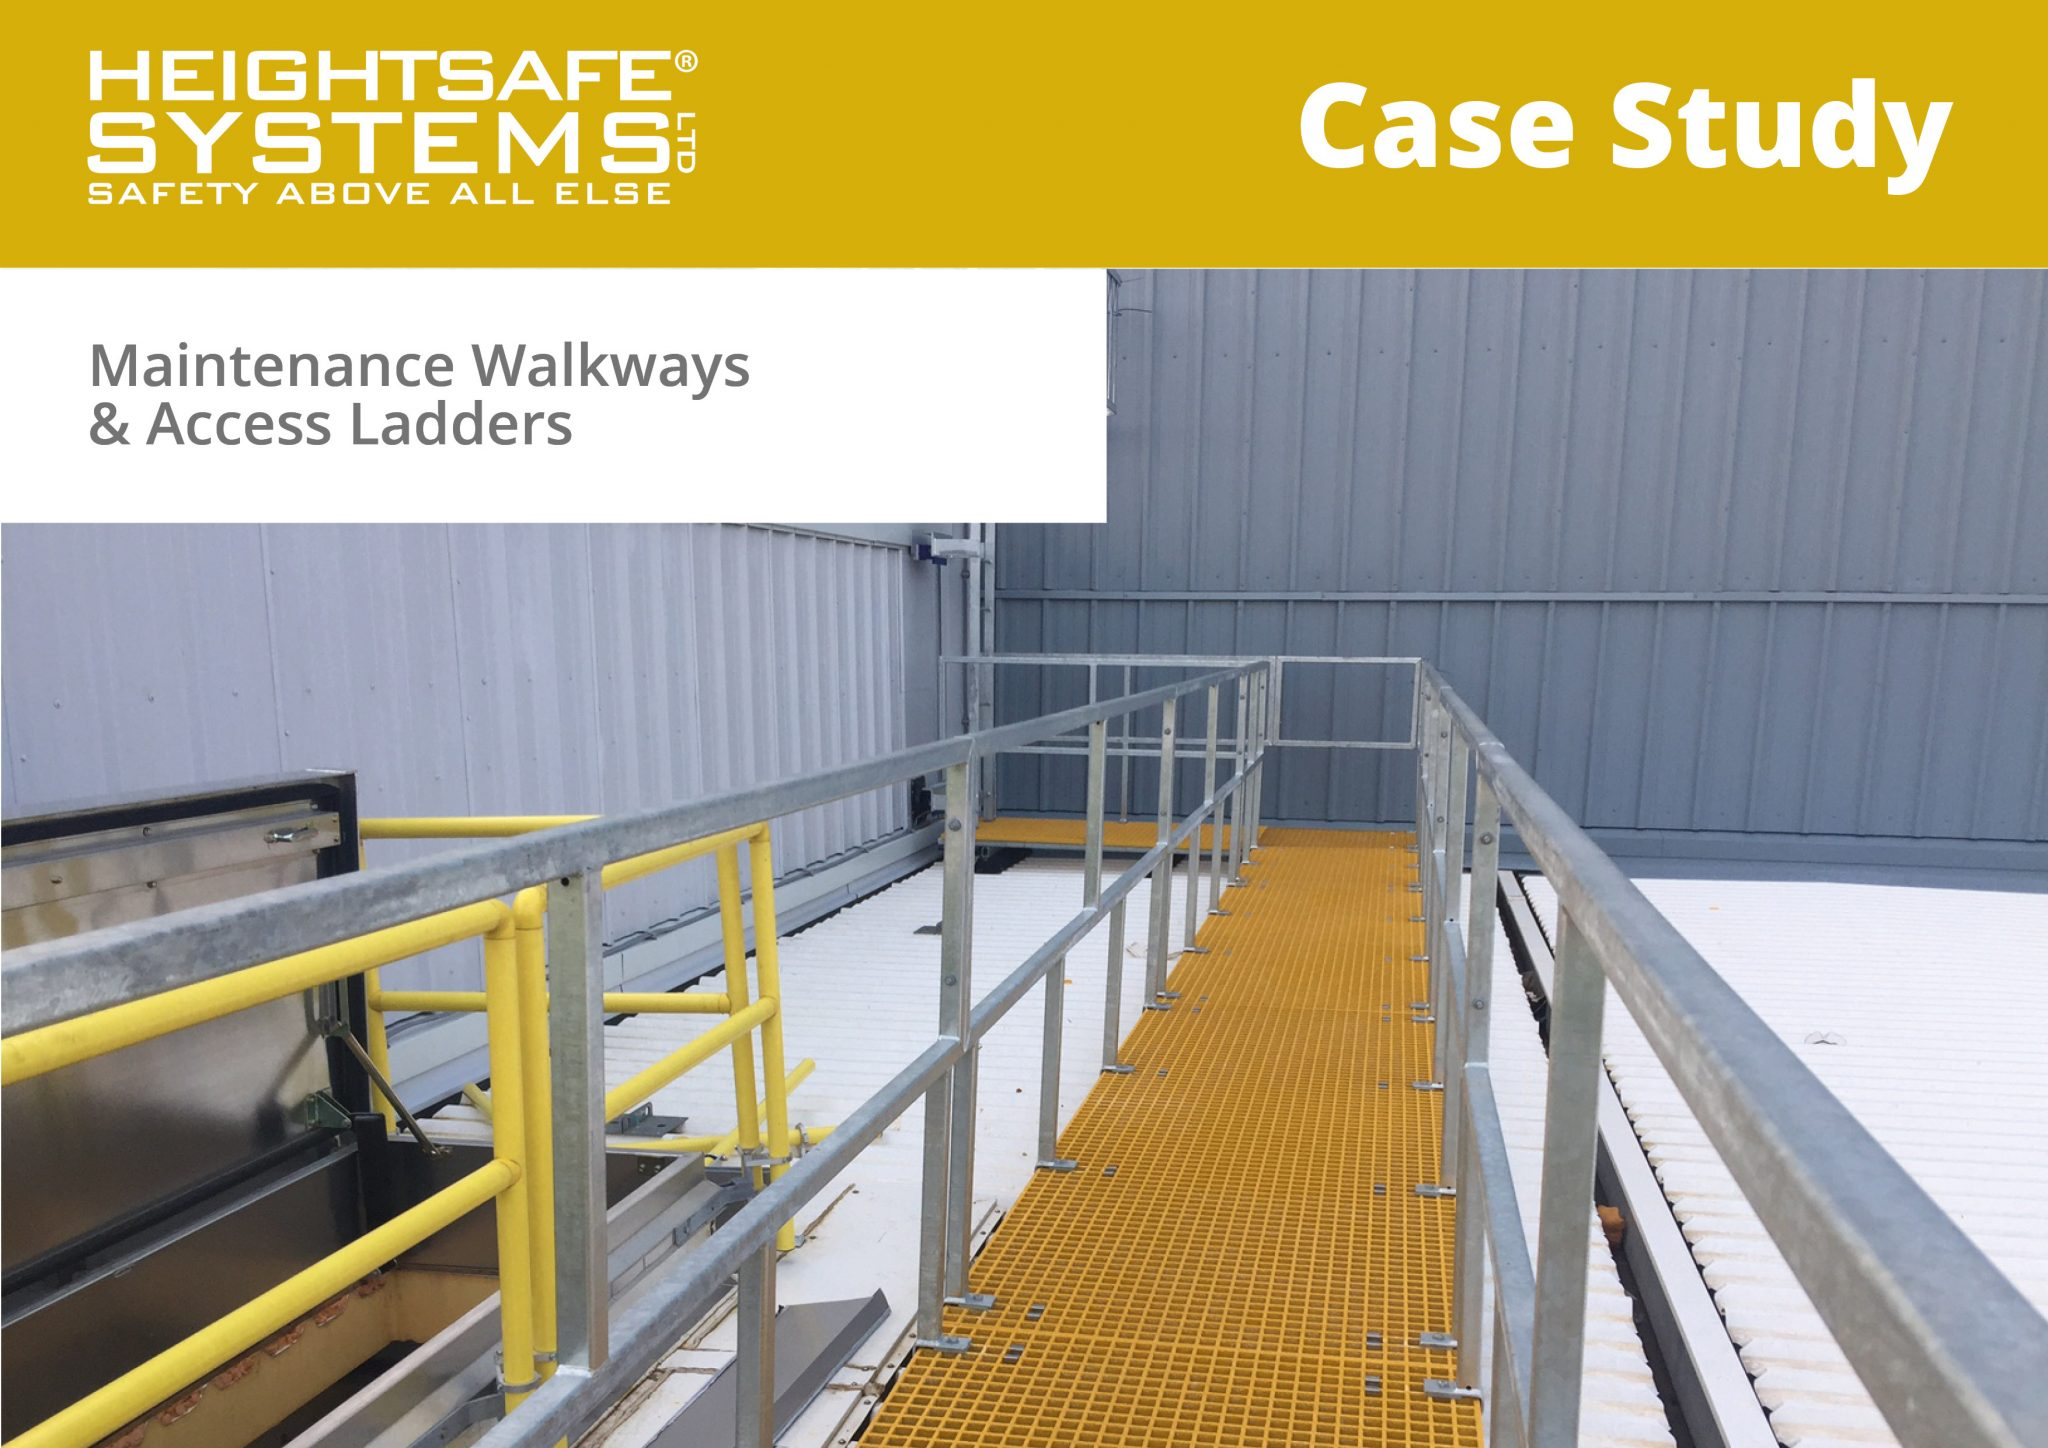 Maintenance Walkways & Access Ladders